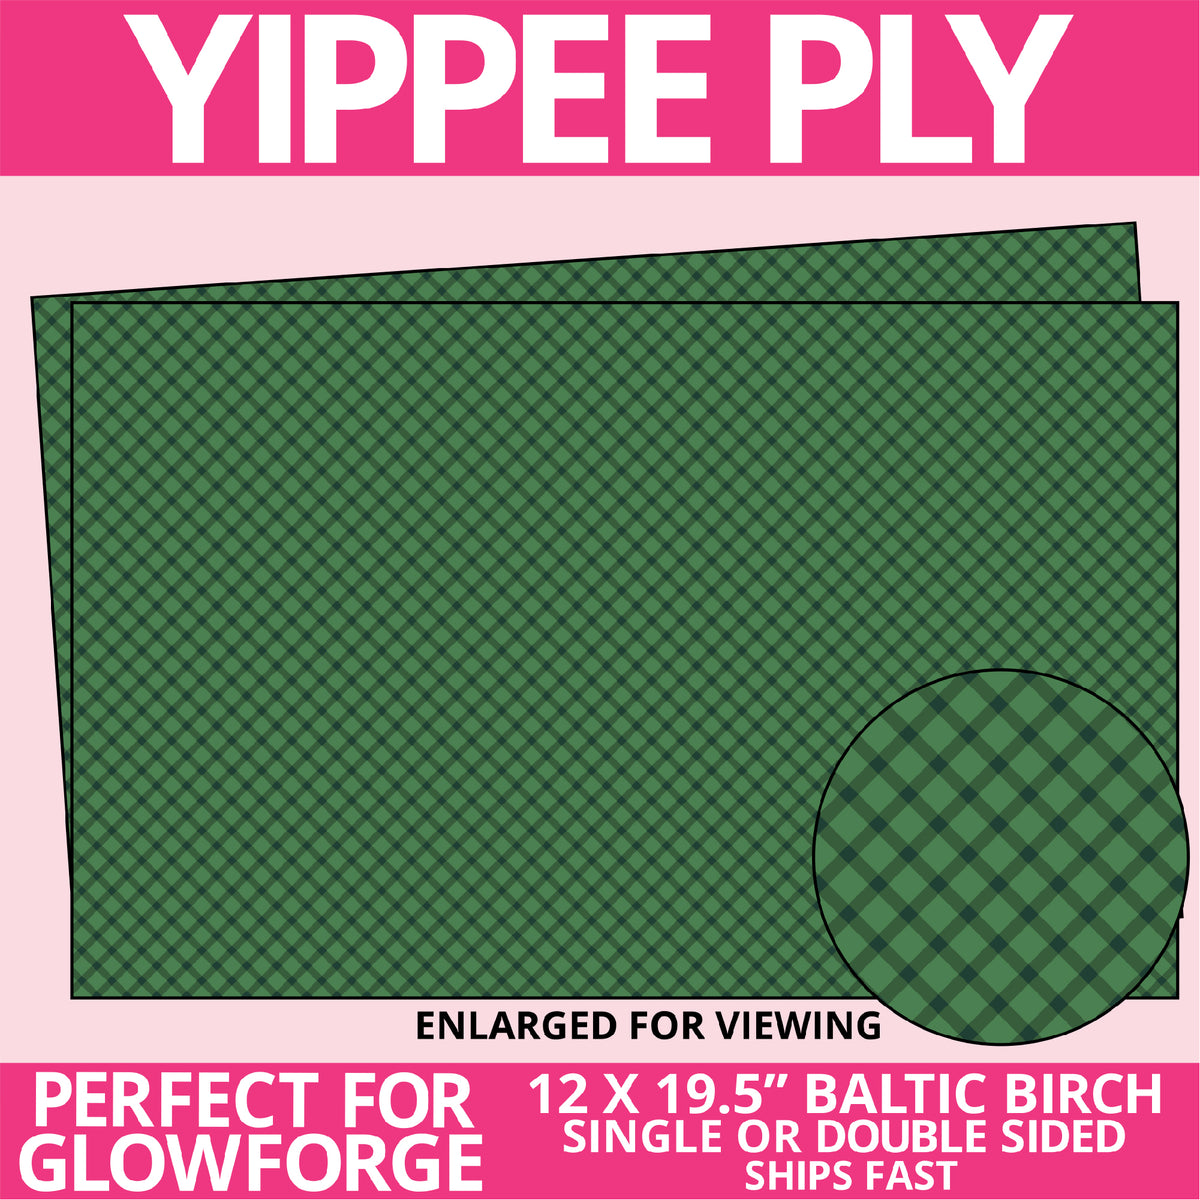 Yippee Ply Green Plaid Pattern on Birch Plywood 1029